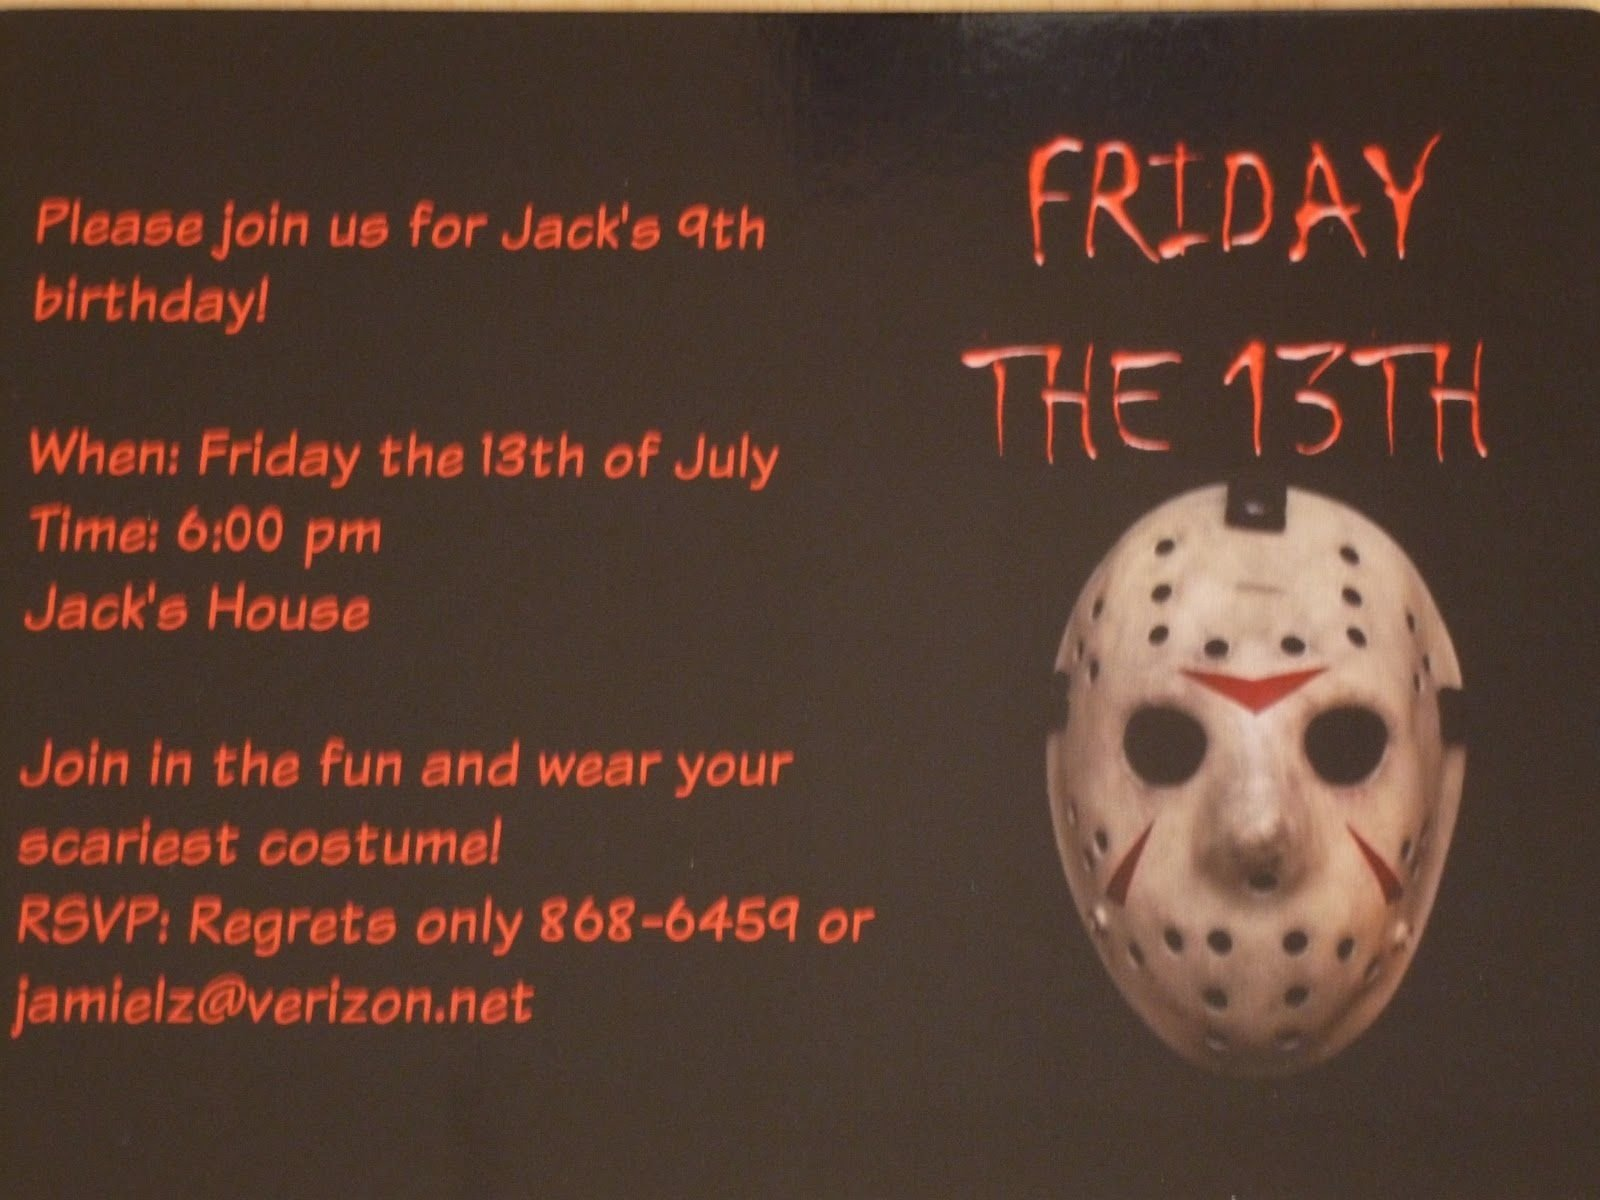 10 Unique Friday The 13Th Party Ideas download 13th birthday party invitation ideas free printable